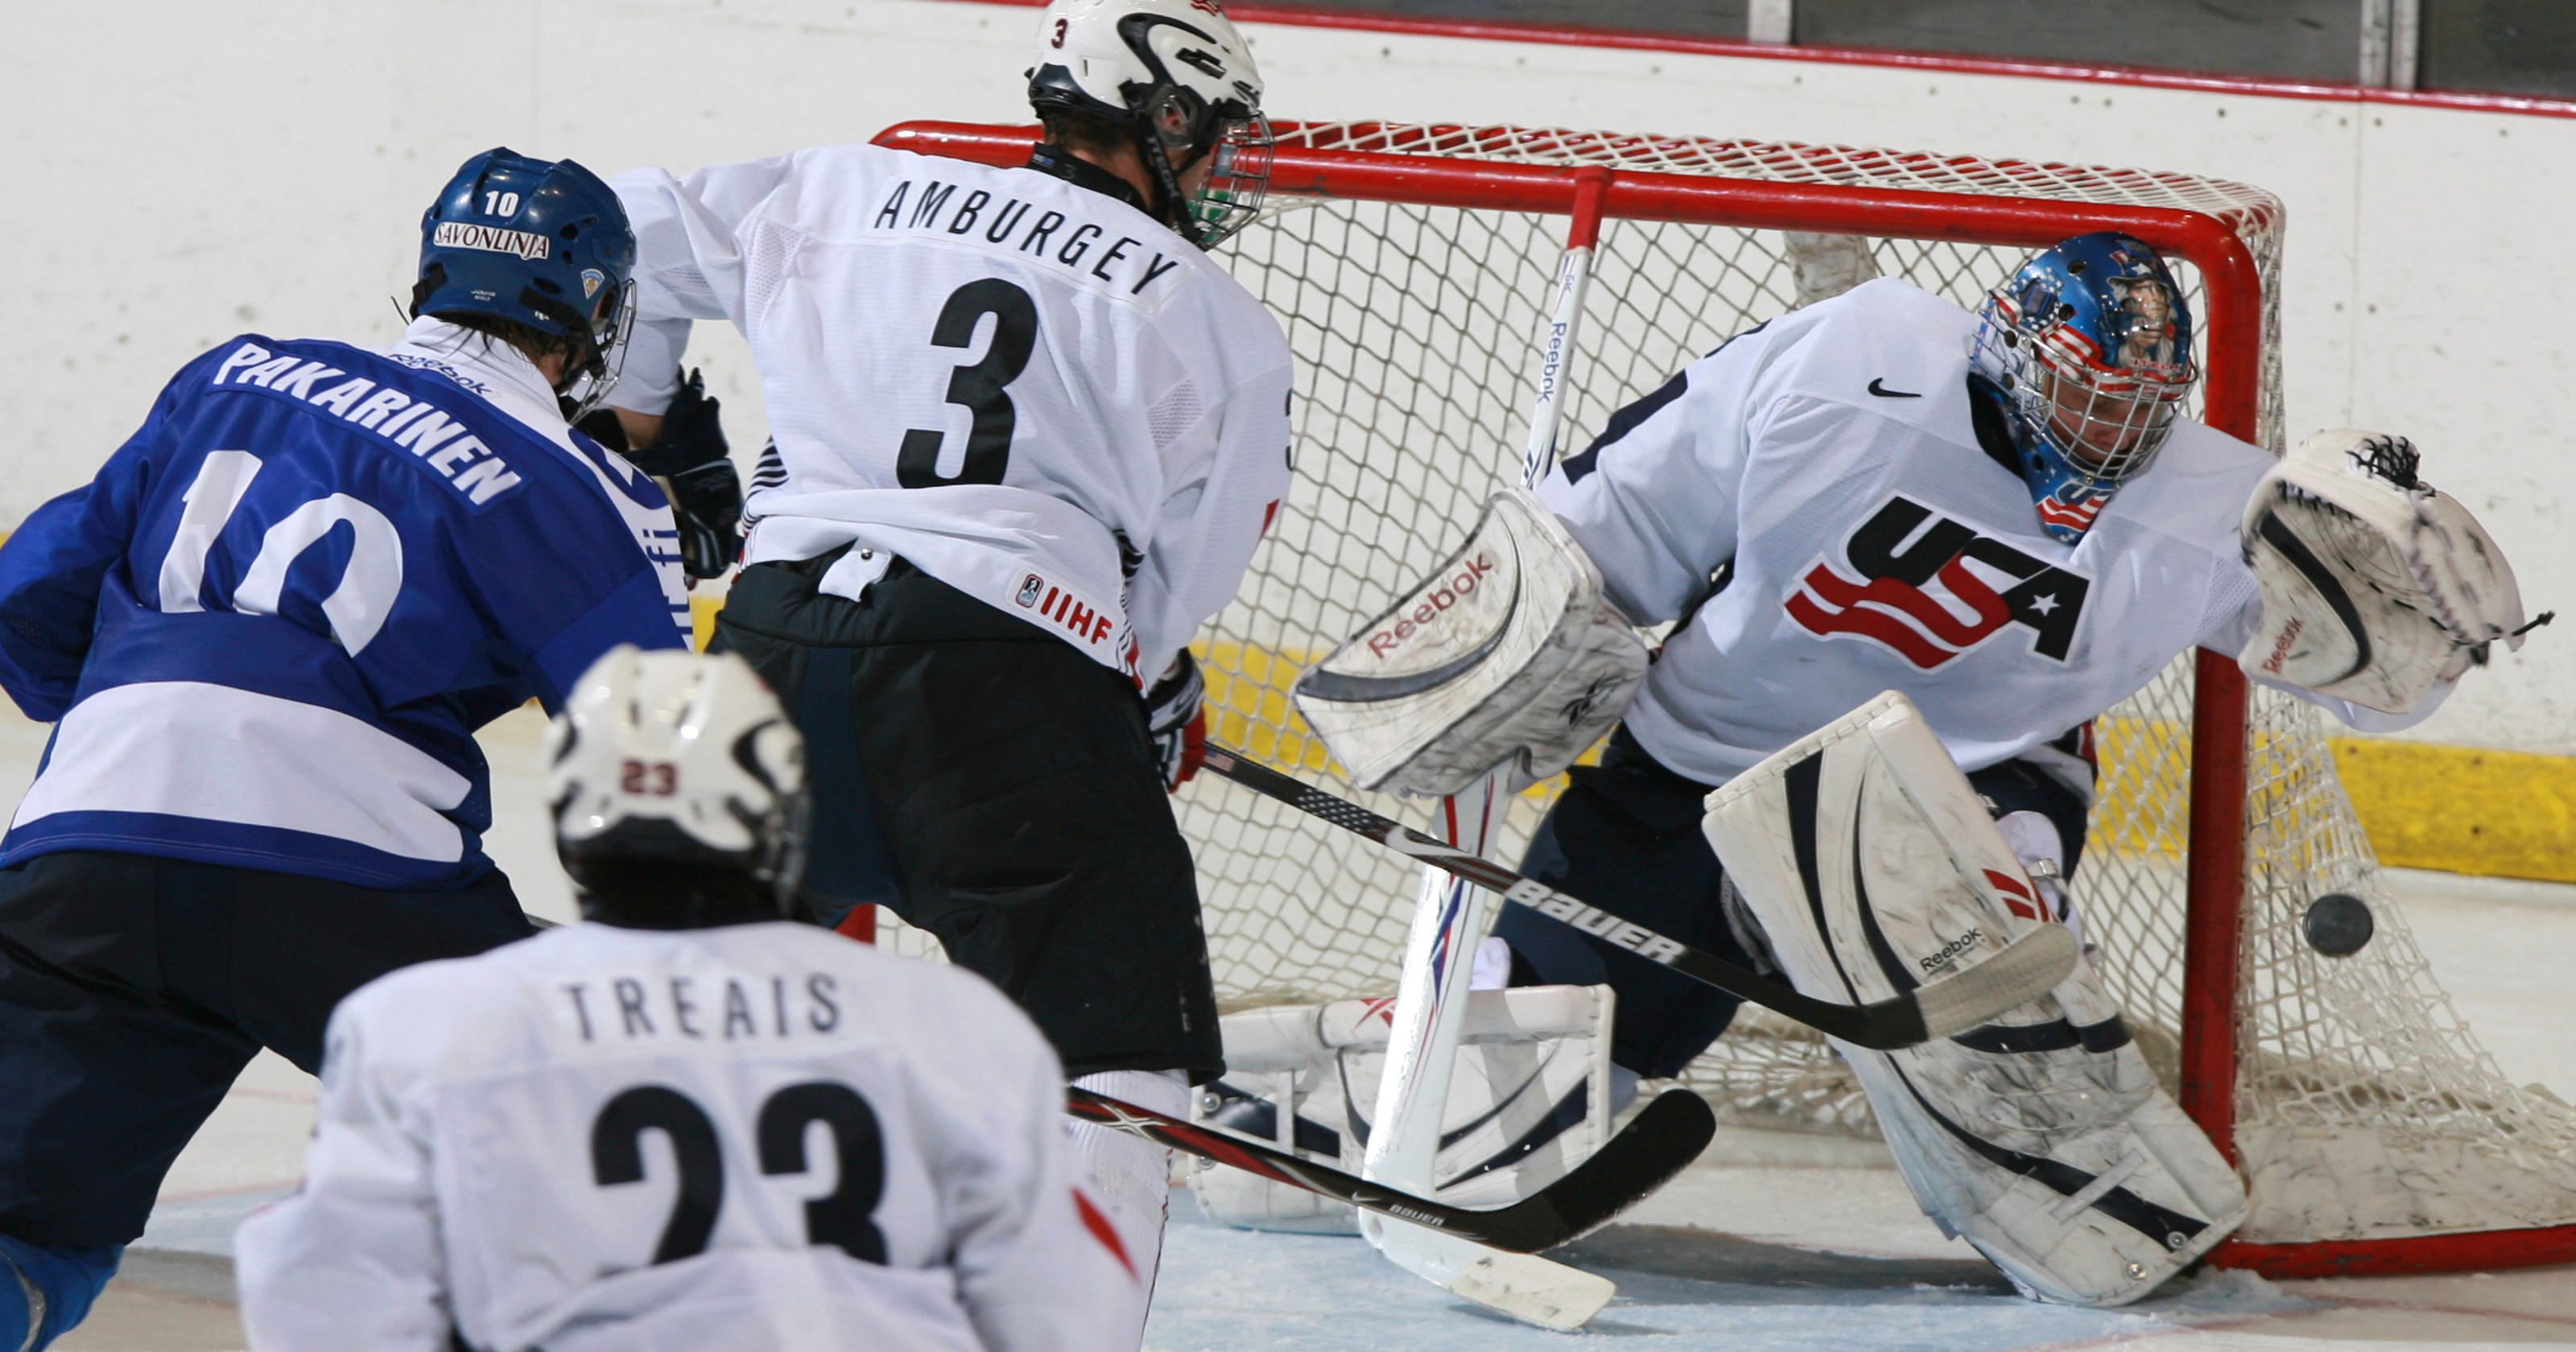 Leggio, Maxwell named as final 2 goalies on US Olympic team